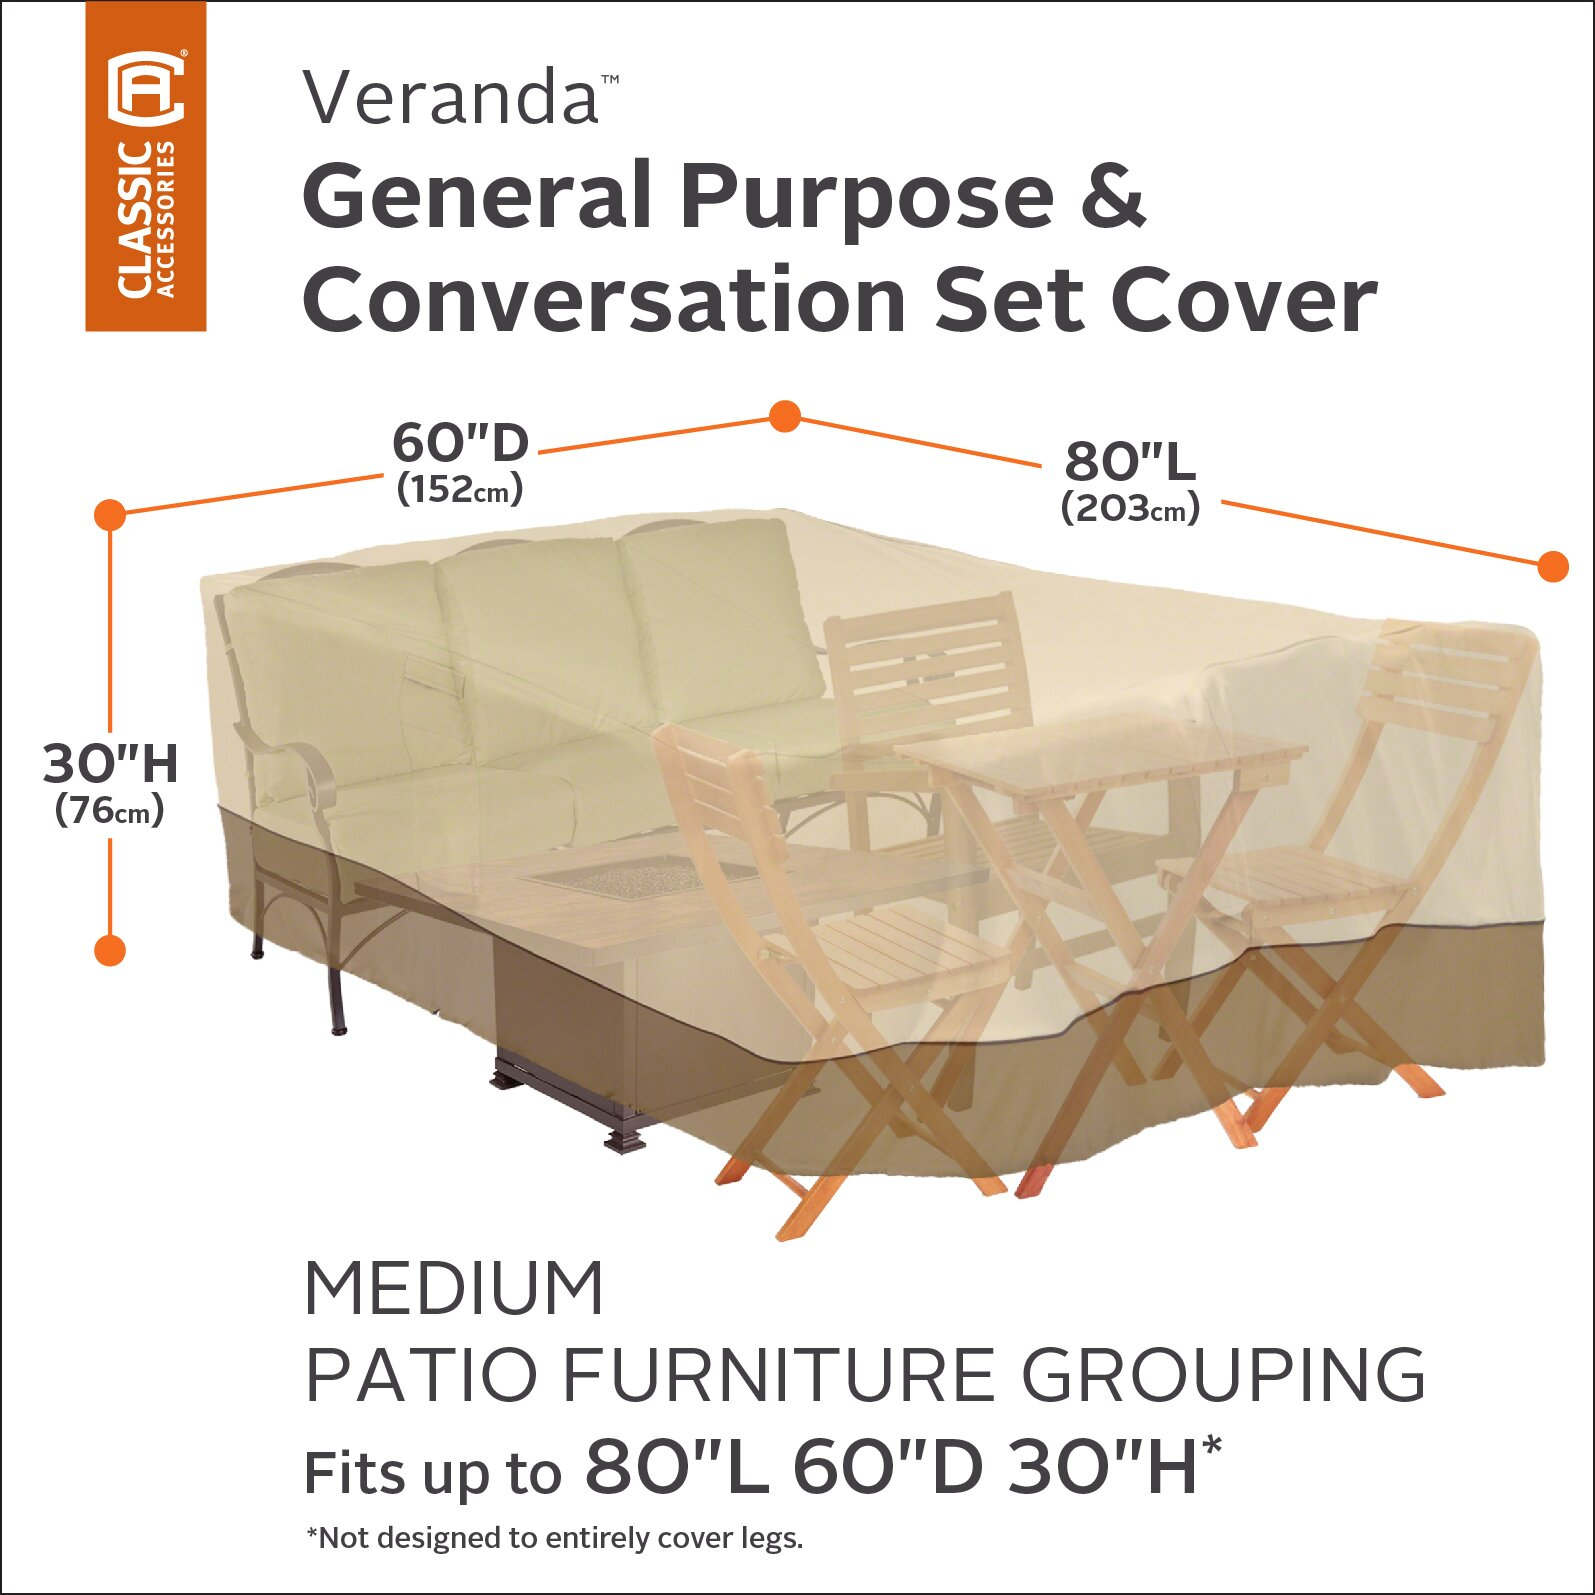 Veranda Clics Patio Furniture